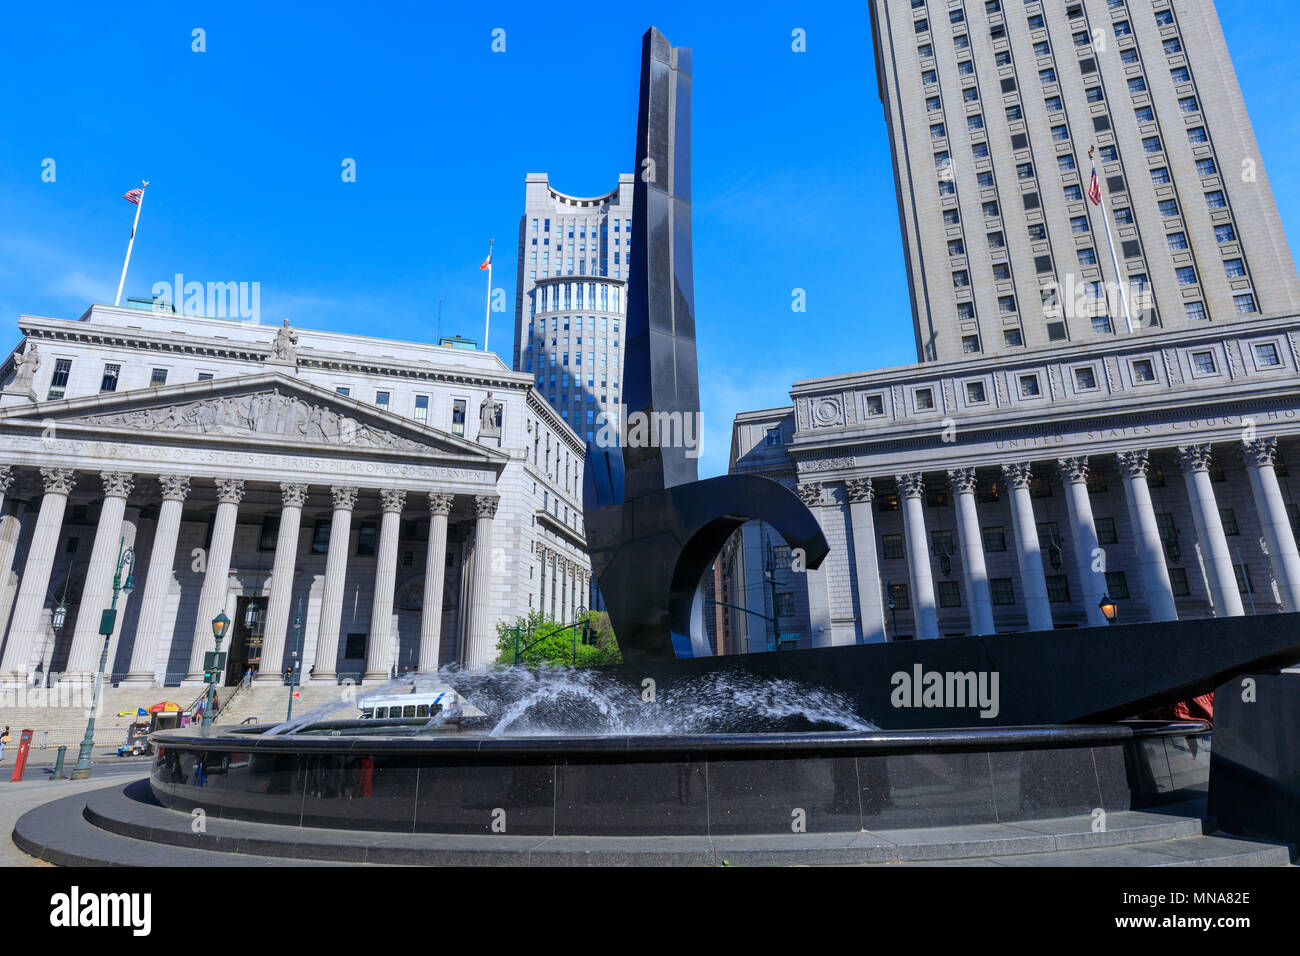 Manhattan, New York City - May 10, 2018 : New York State Supreme Court Building, originally known as New York County Courthouse, at 60 Centre Street o Stock Photo